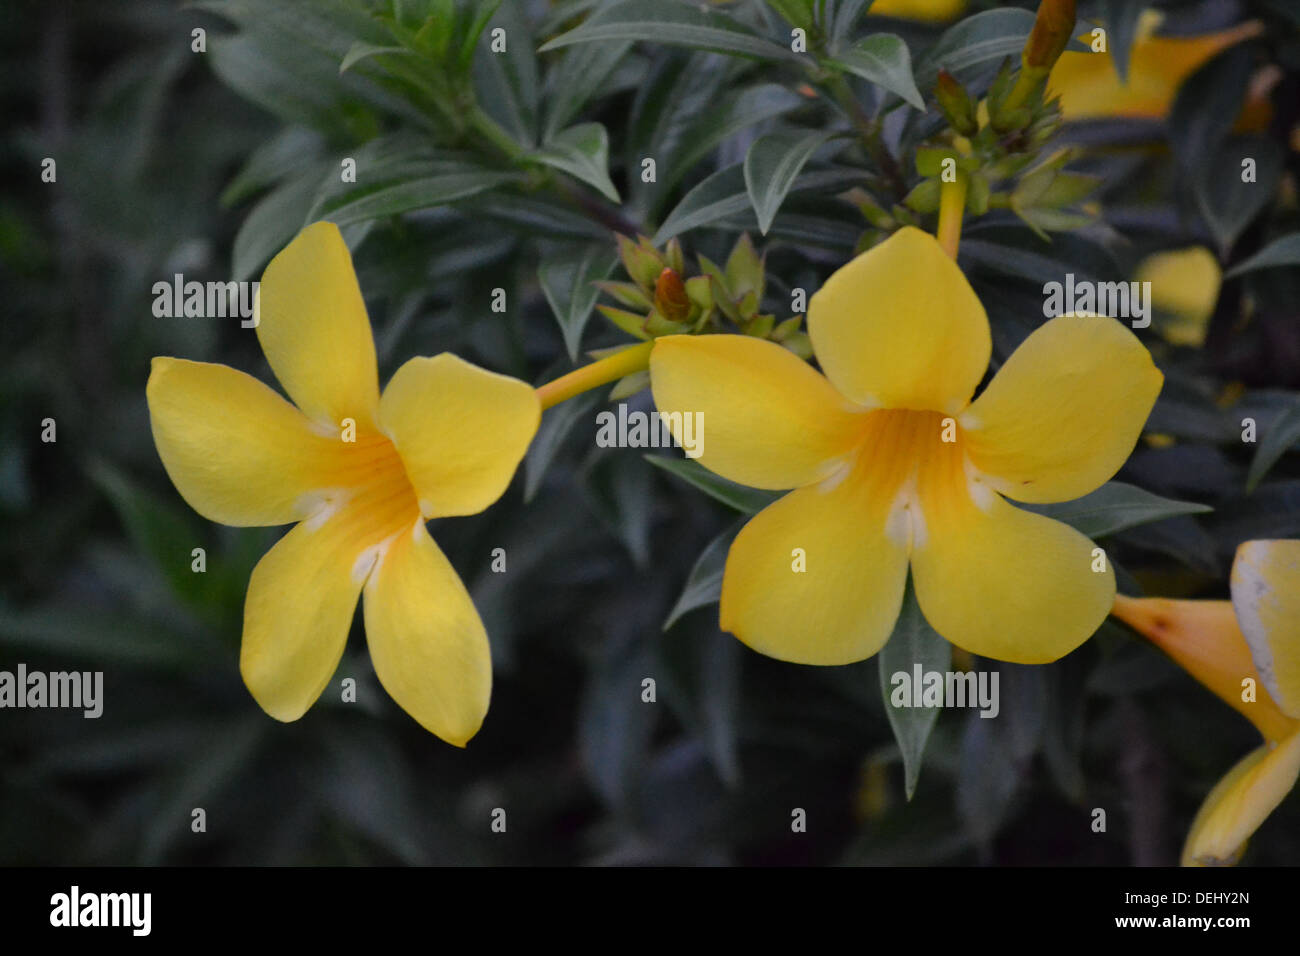 beautiful flowers, represents friendship, relation, togetherness, liveliness, evening stars, - Stock Image